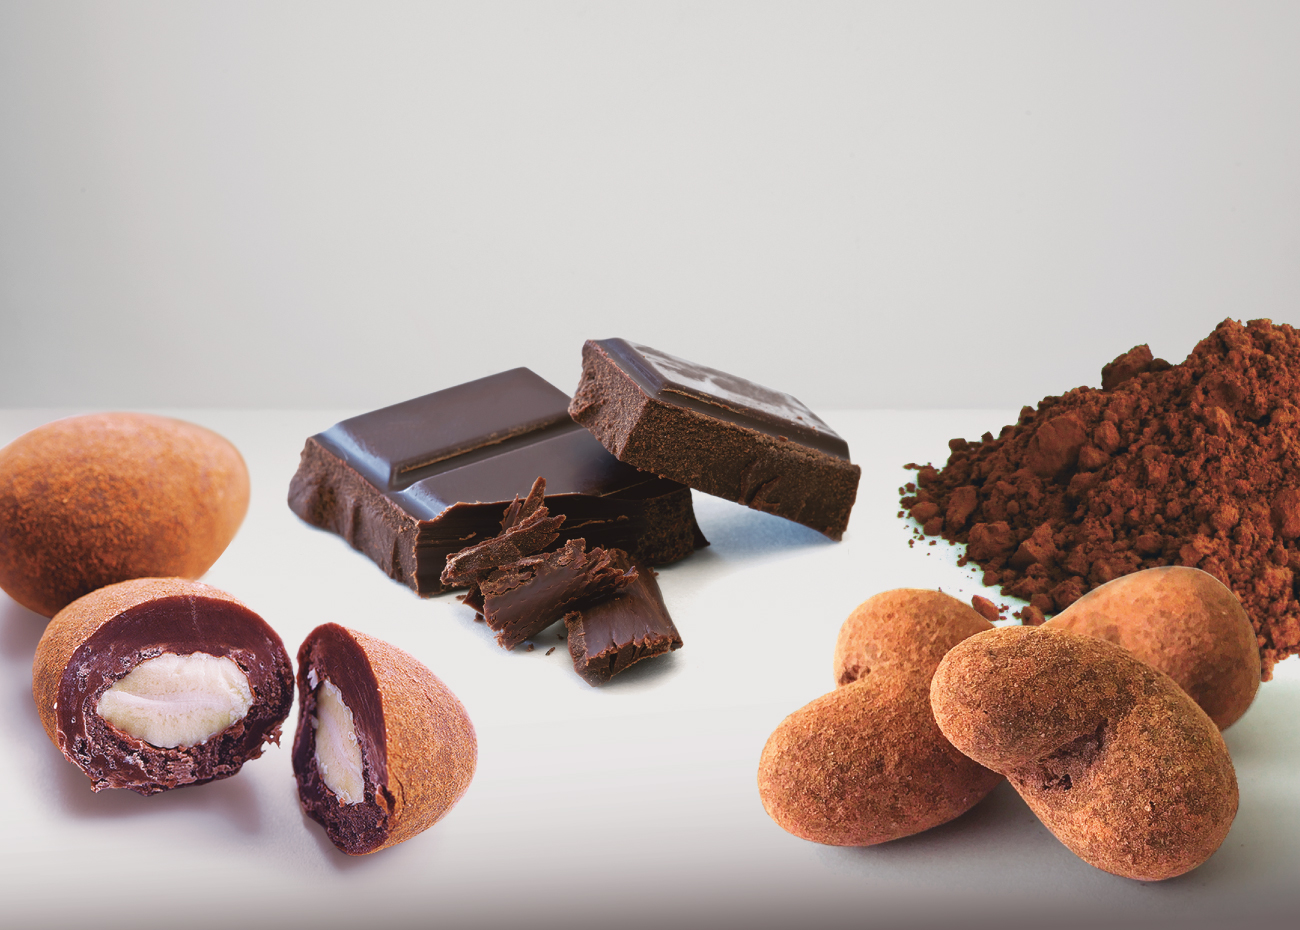 Chocolateados | Aperimax, frutos secos de calidad